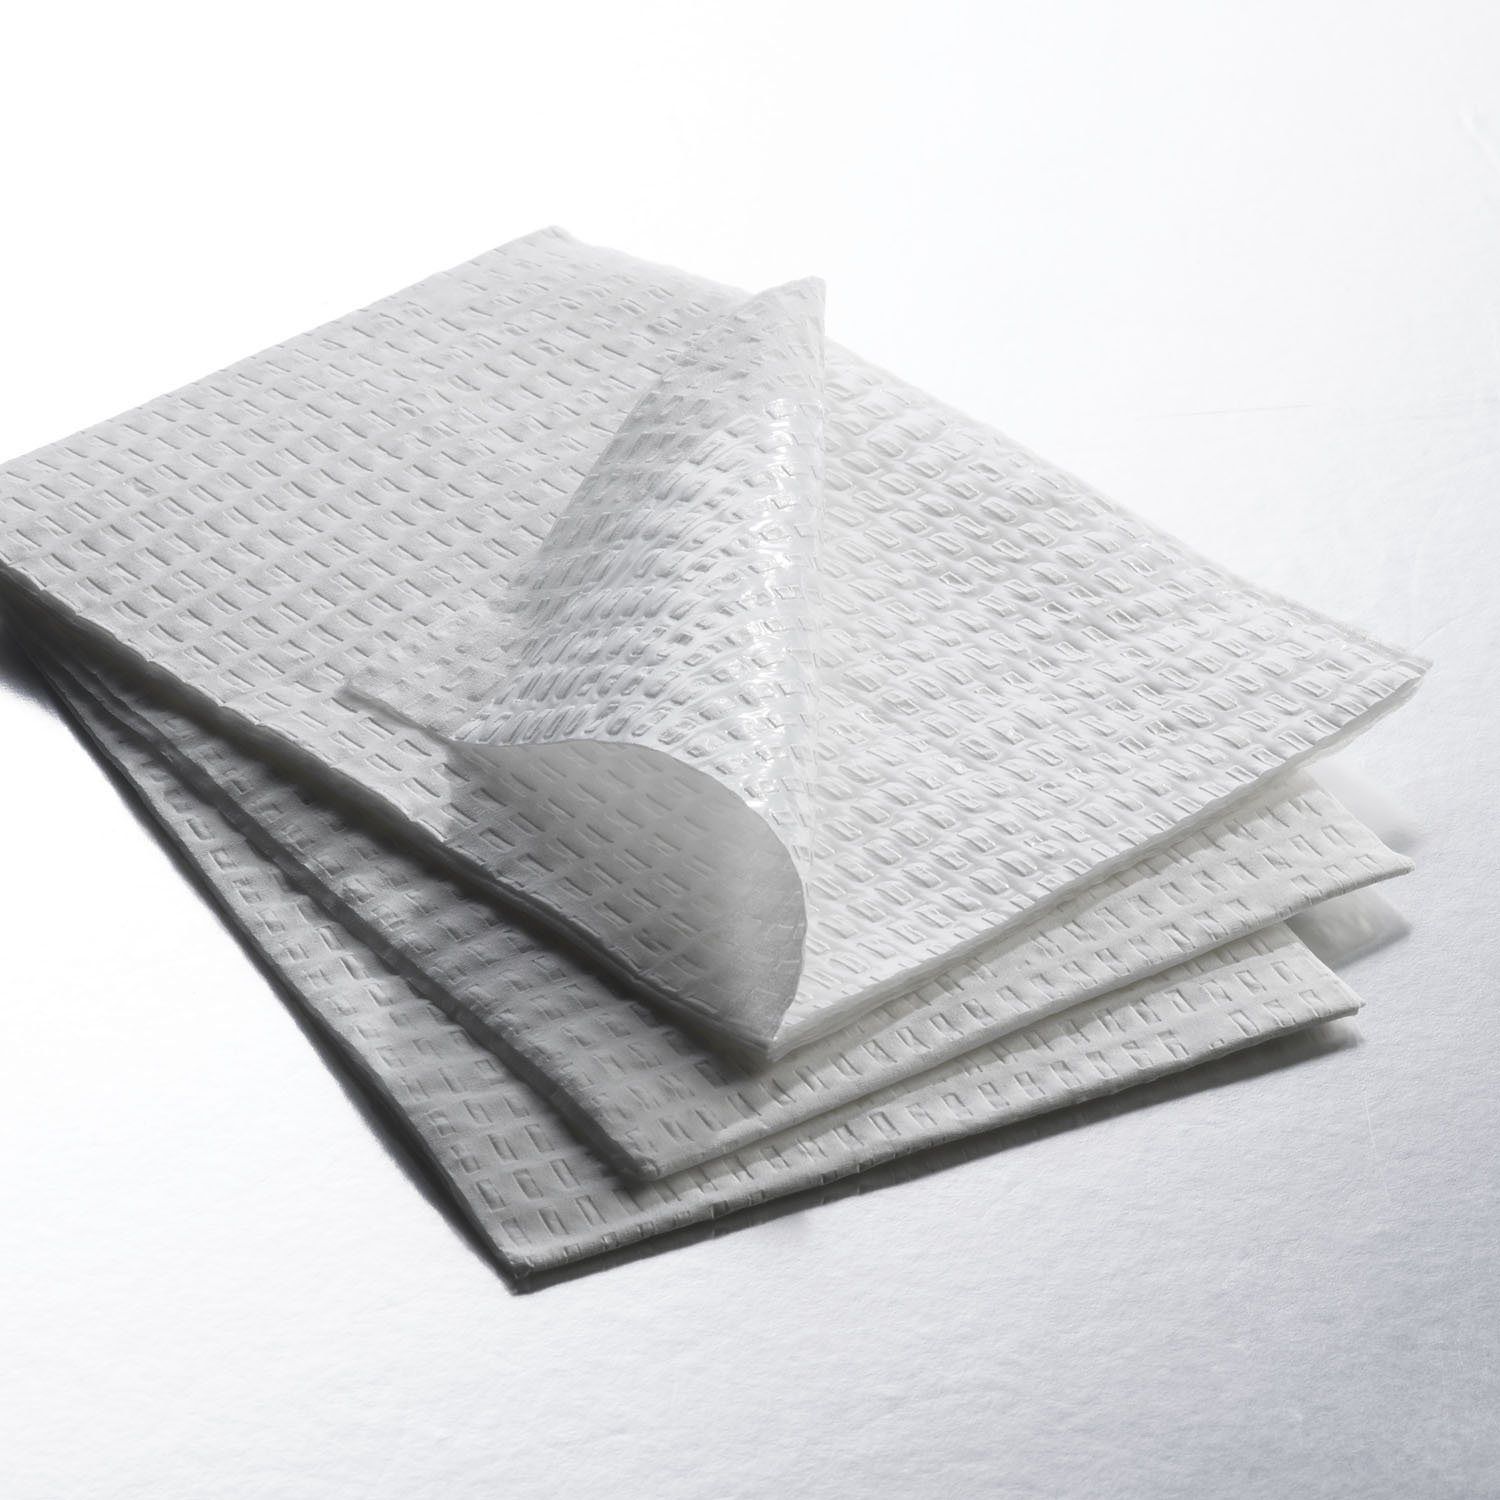 Graham Medical 70183N Towel, TTP, 13.5''w x 18''l (Pack of 500)